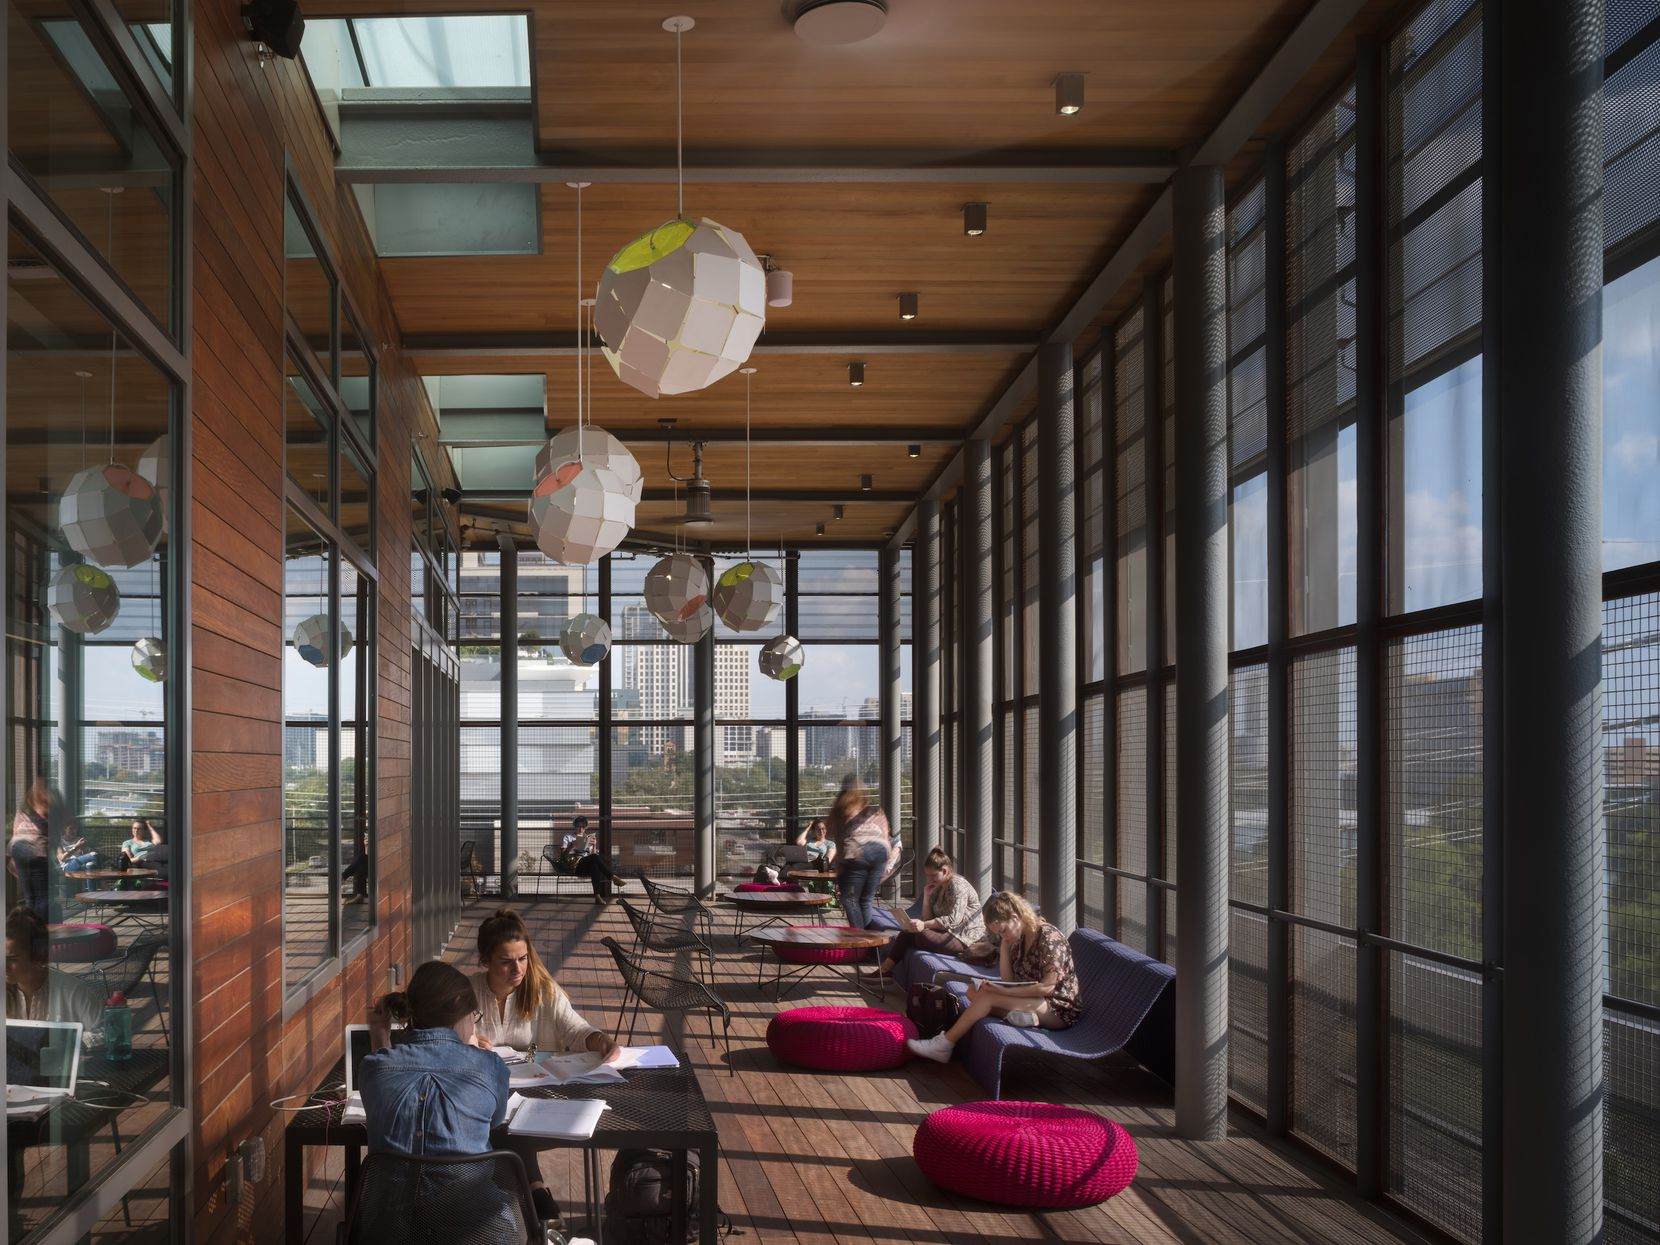 The new Austin Central Library is garnering acclaim for its architecture.